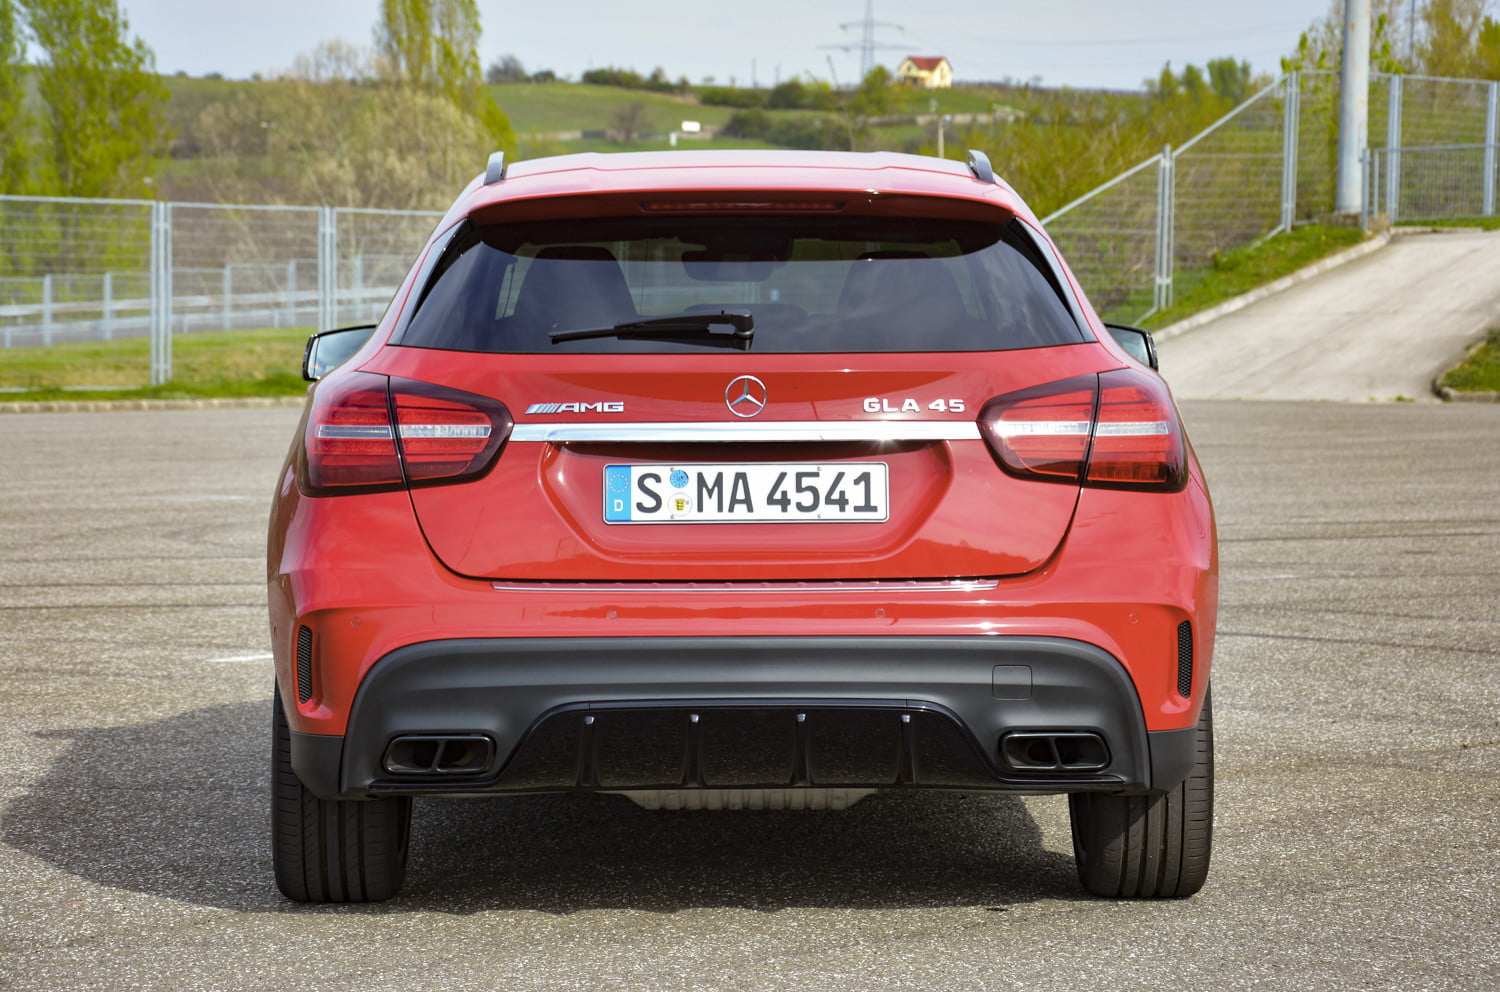 2018 mercedes amg gla45 first drive impressions specs 519